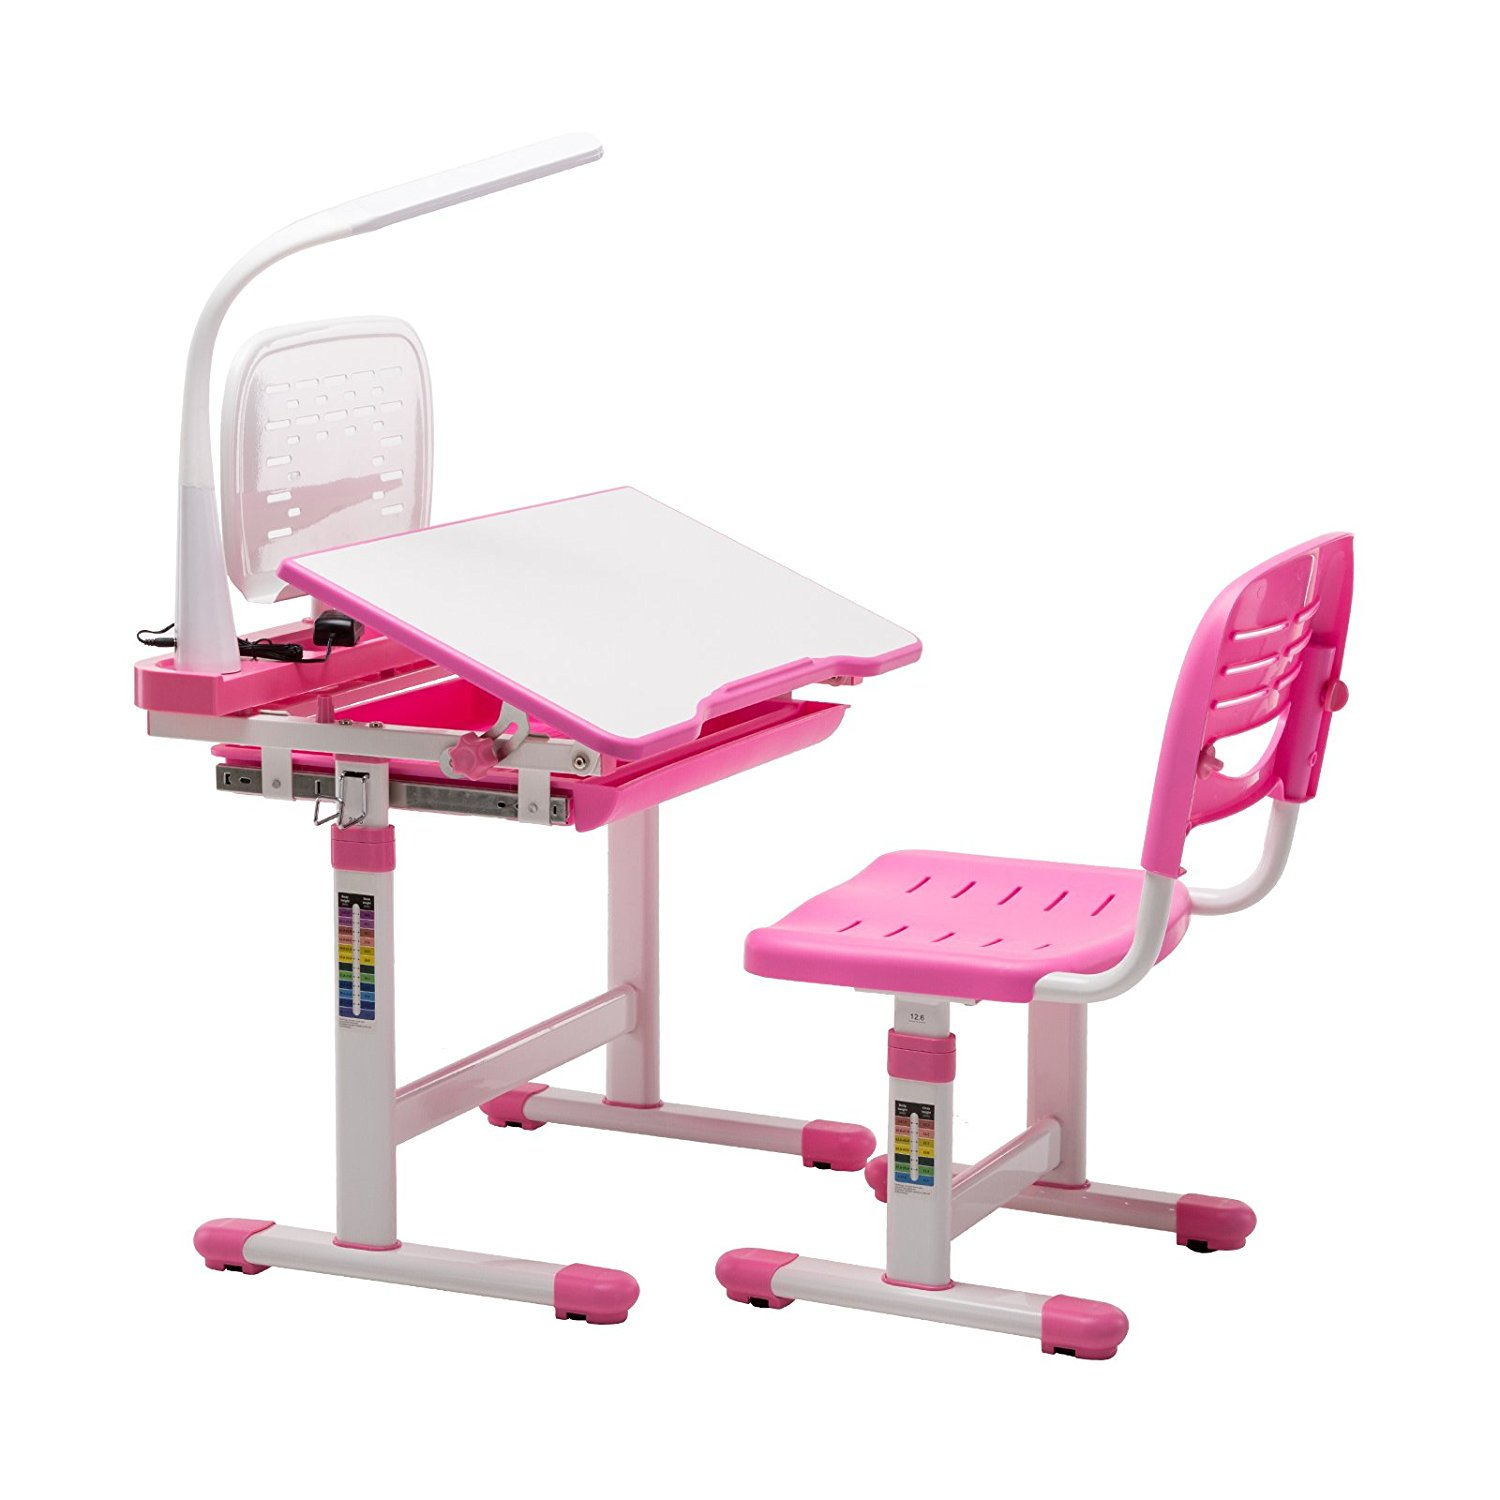 Image of: Childrens Study Desk Chair Set Multifunctional Desk And Chair Children Kids Study Table Student Desk With Lamp And Book Stand Ergonomic Pink Kids Desk Chair Height Adjustable Children Study Desk Kids Furniture